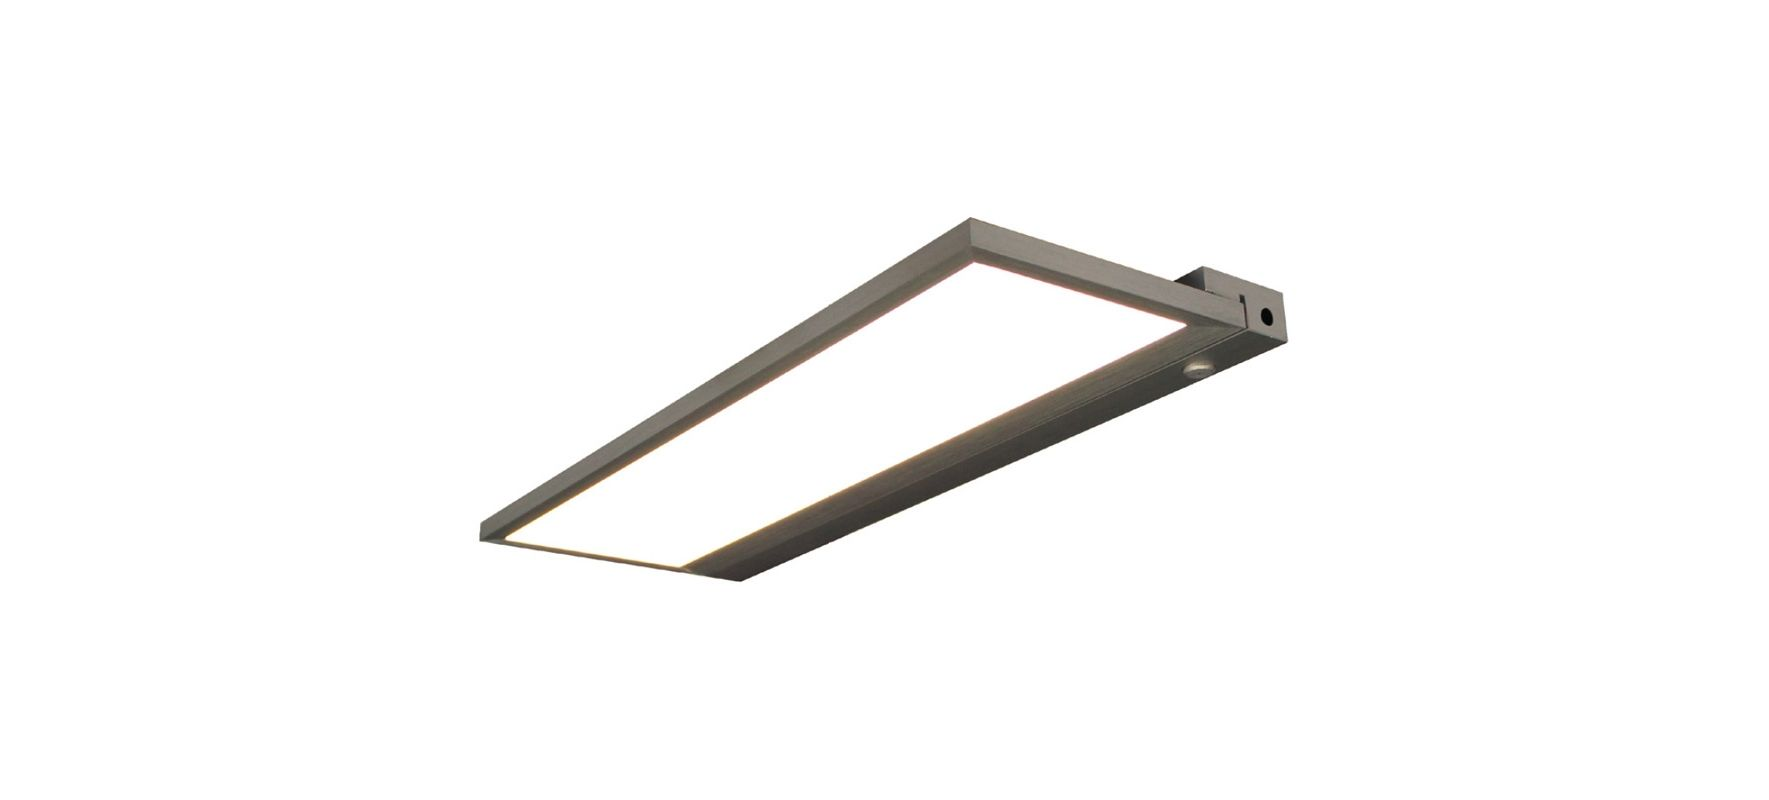 "WAC Lighting LN-LED24-27 24"" Length 2700K High Output LED Under"